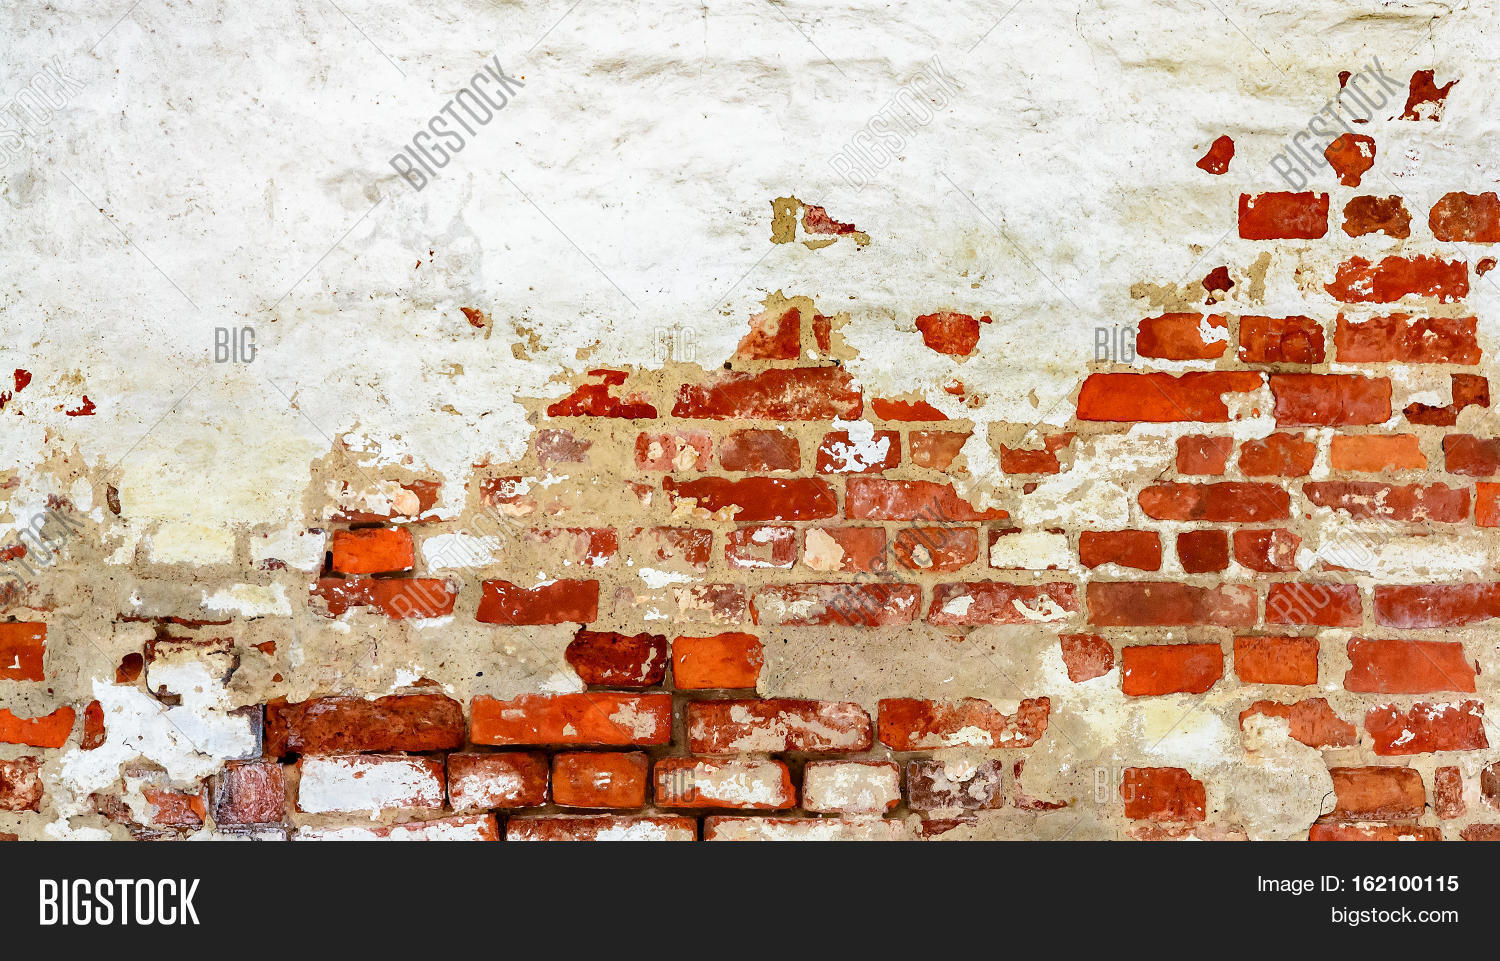 Brick Wall With White Uneven Stucco Red Background Old Vintage